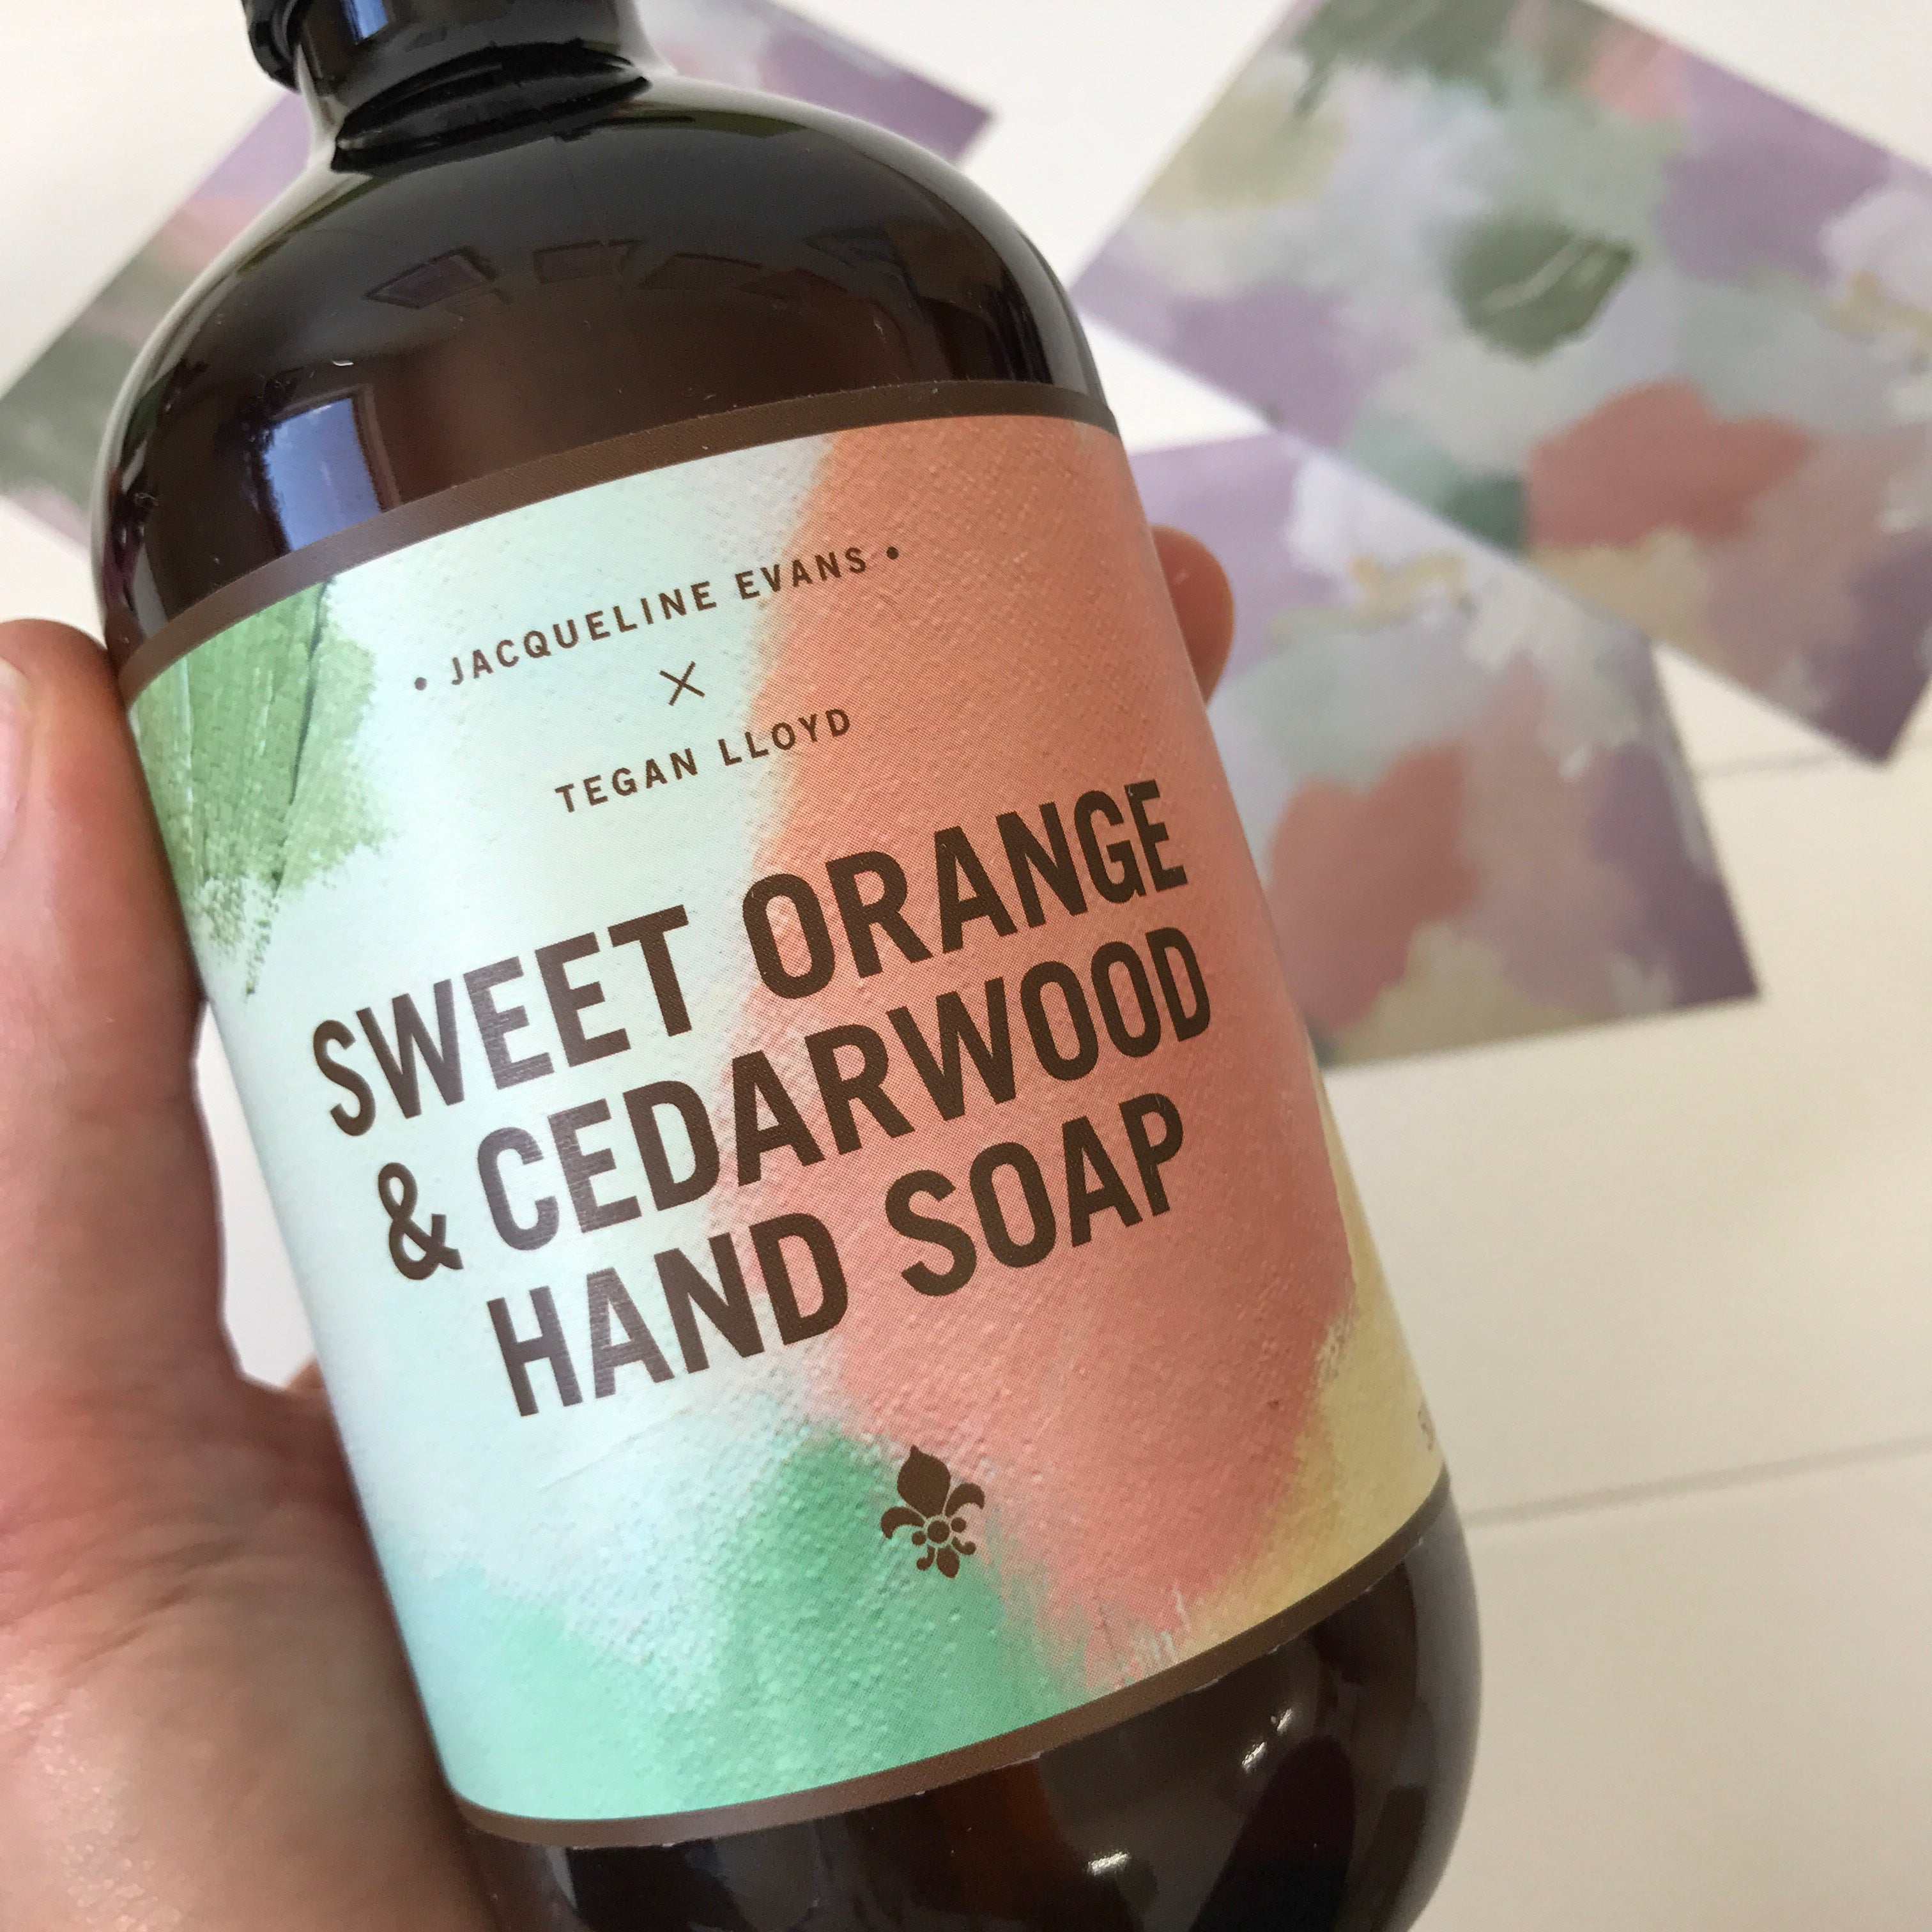 JE x Tegan Lloyd Hand Soap